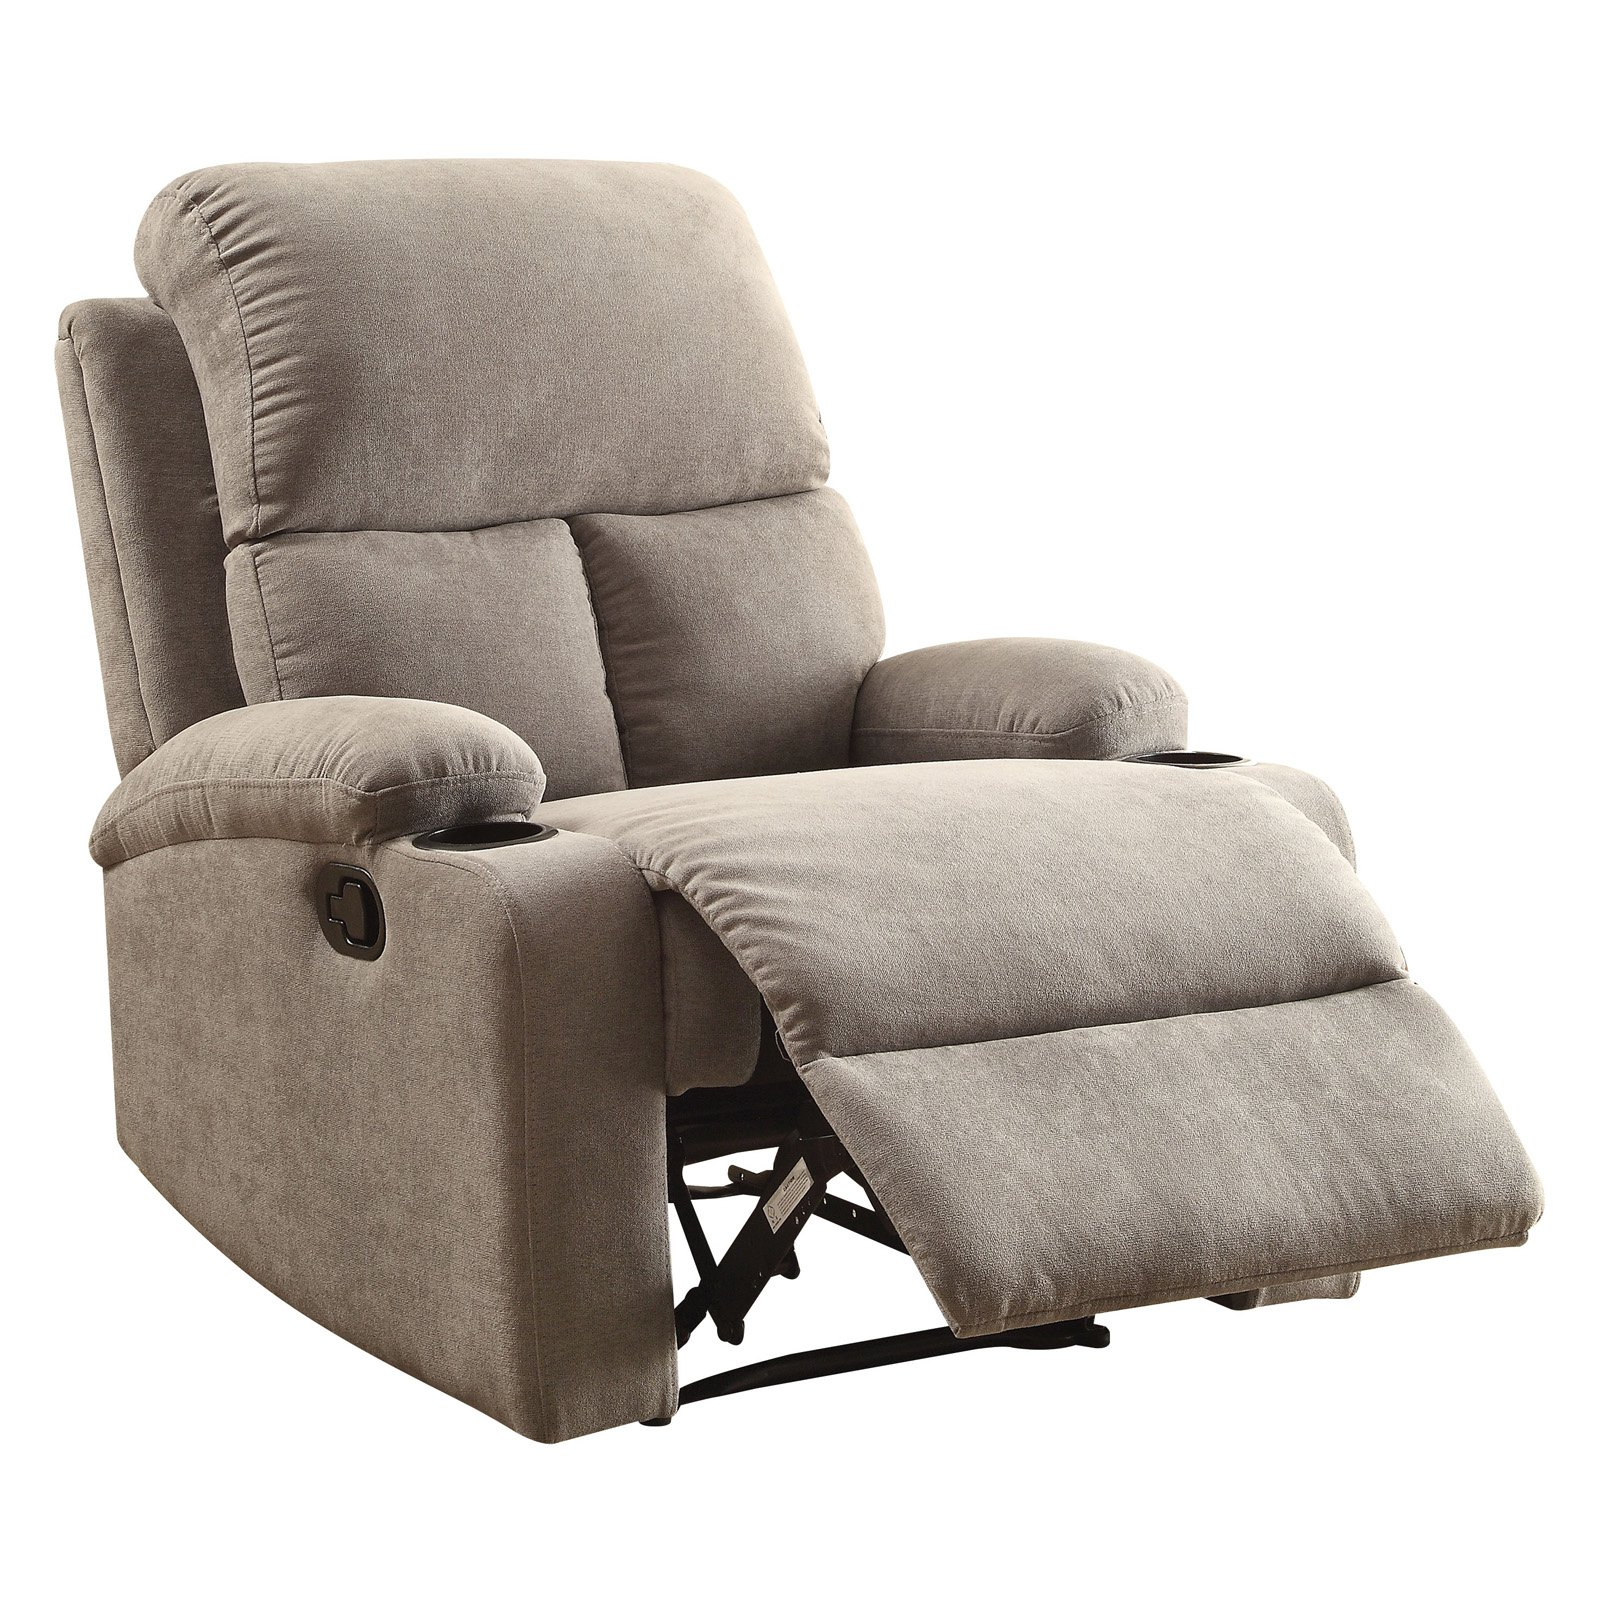 ACME Rosia Linen Recliner with Cup Holder, Multiple Colors